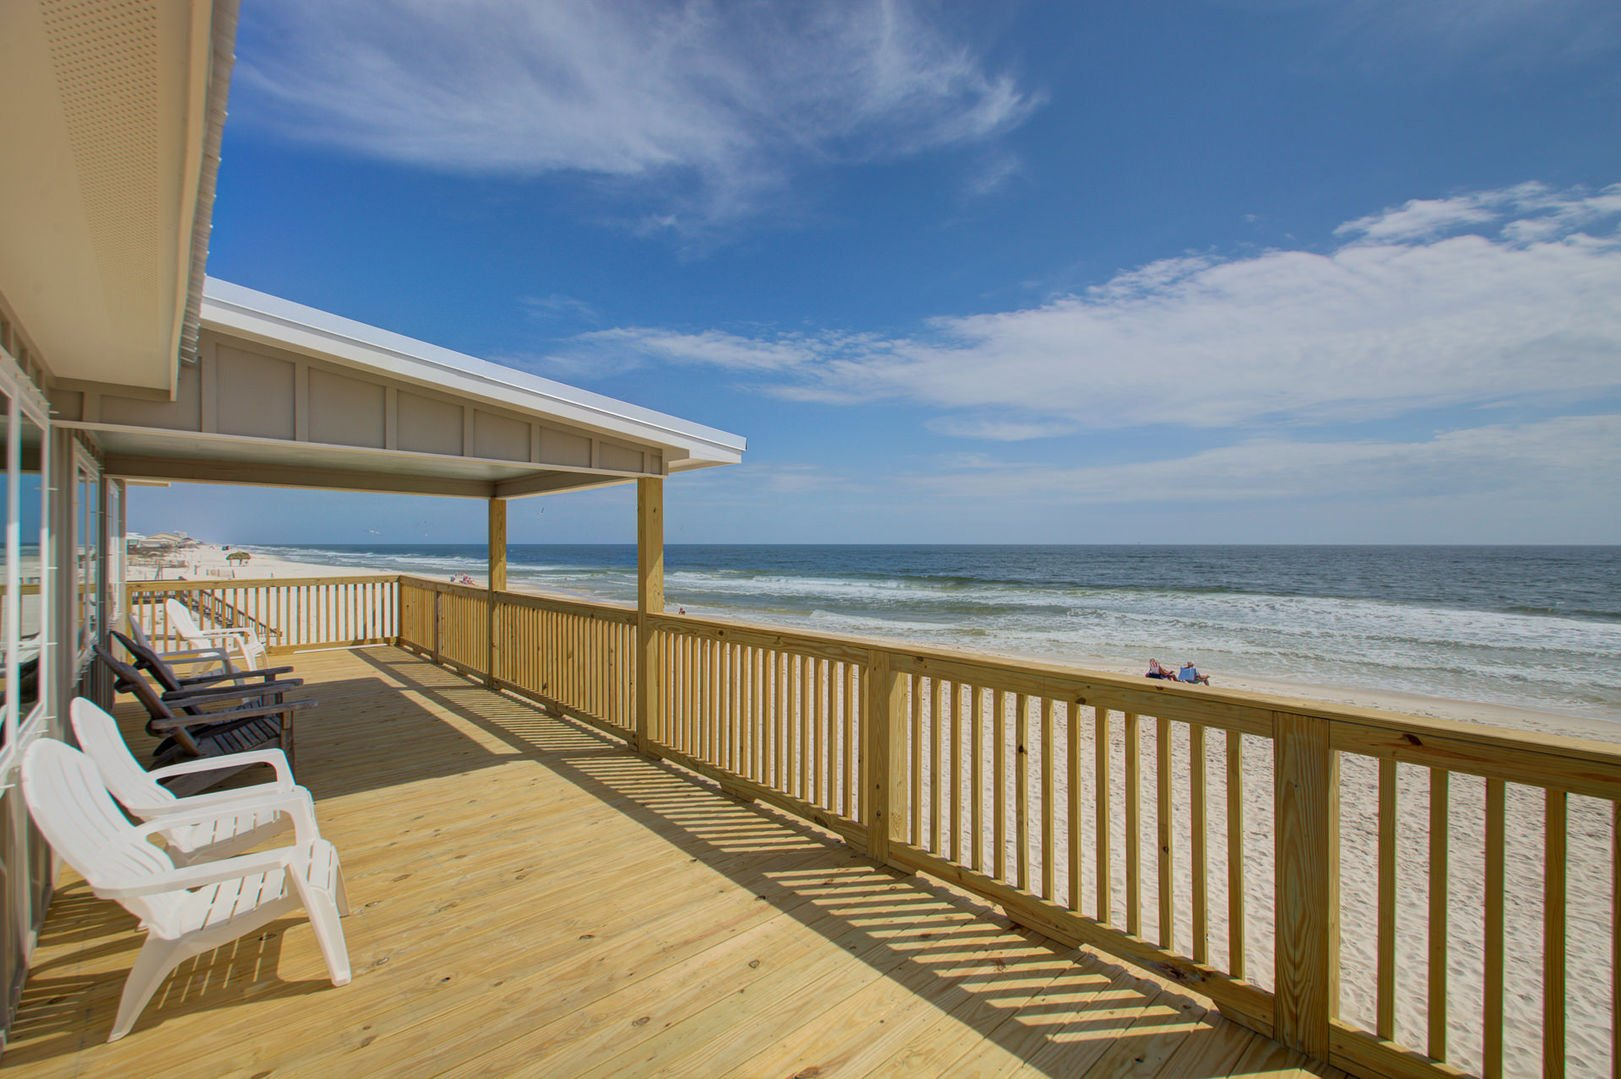 Enjoy the soothing sounds of the waves on the patio of this beachfront Gulf Shores rental.